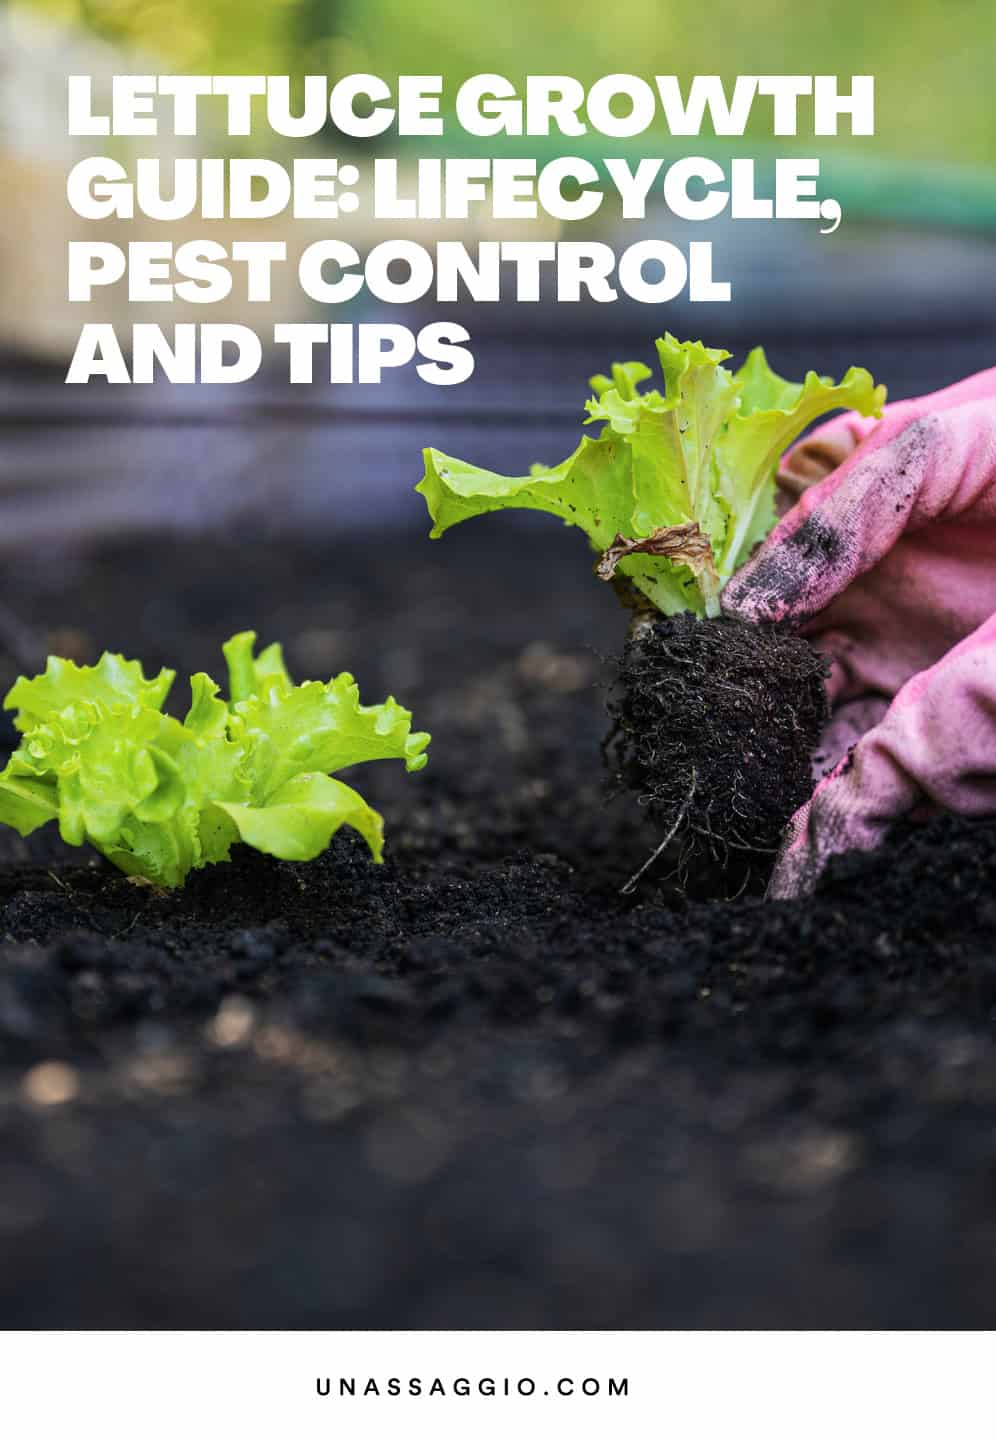 Lettuce Growth Guide: How Long It Takes, Pest Control And Tips